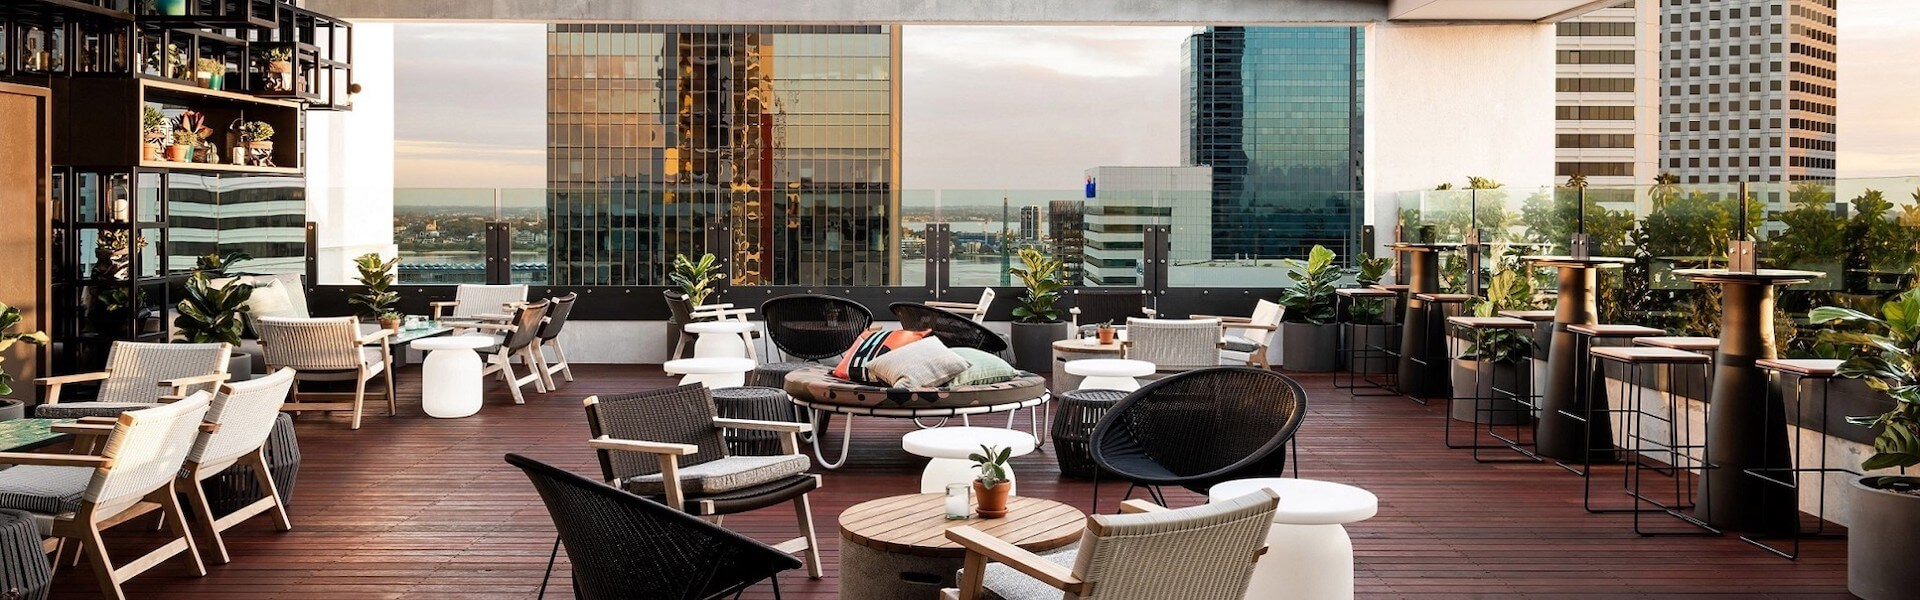 Rooftop bar in Perth